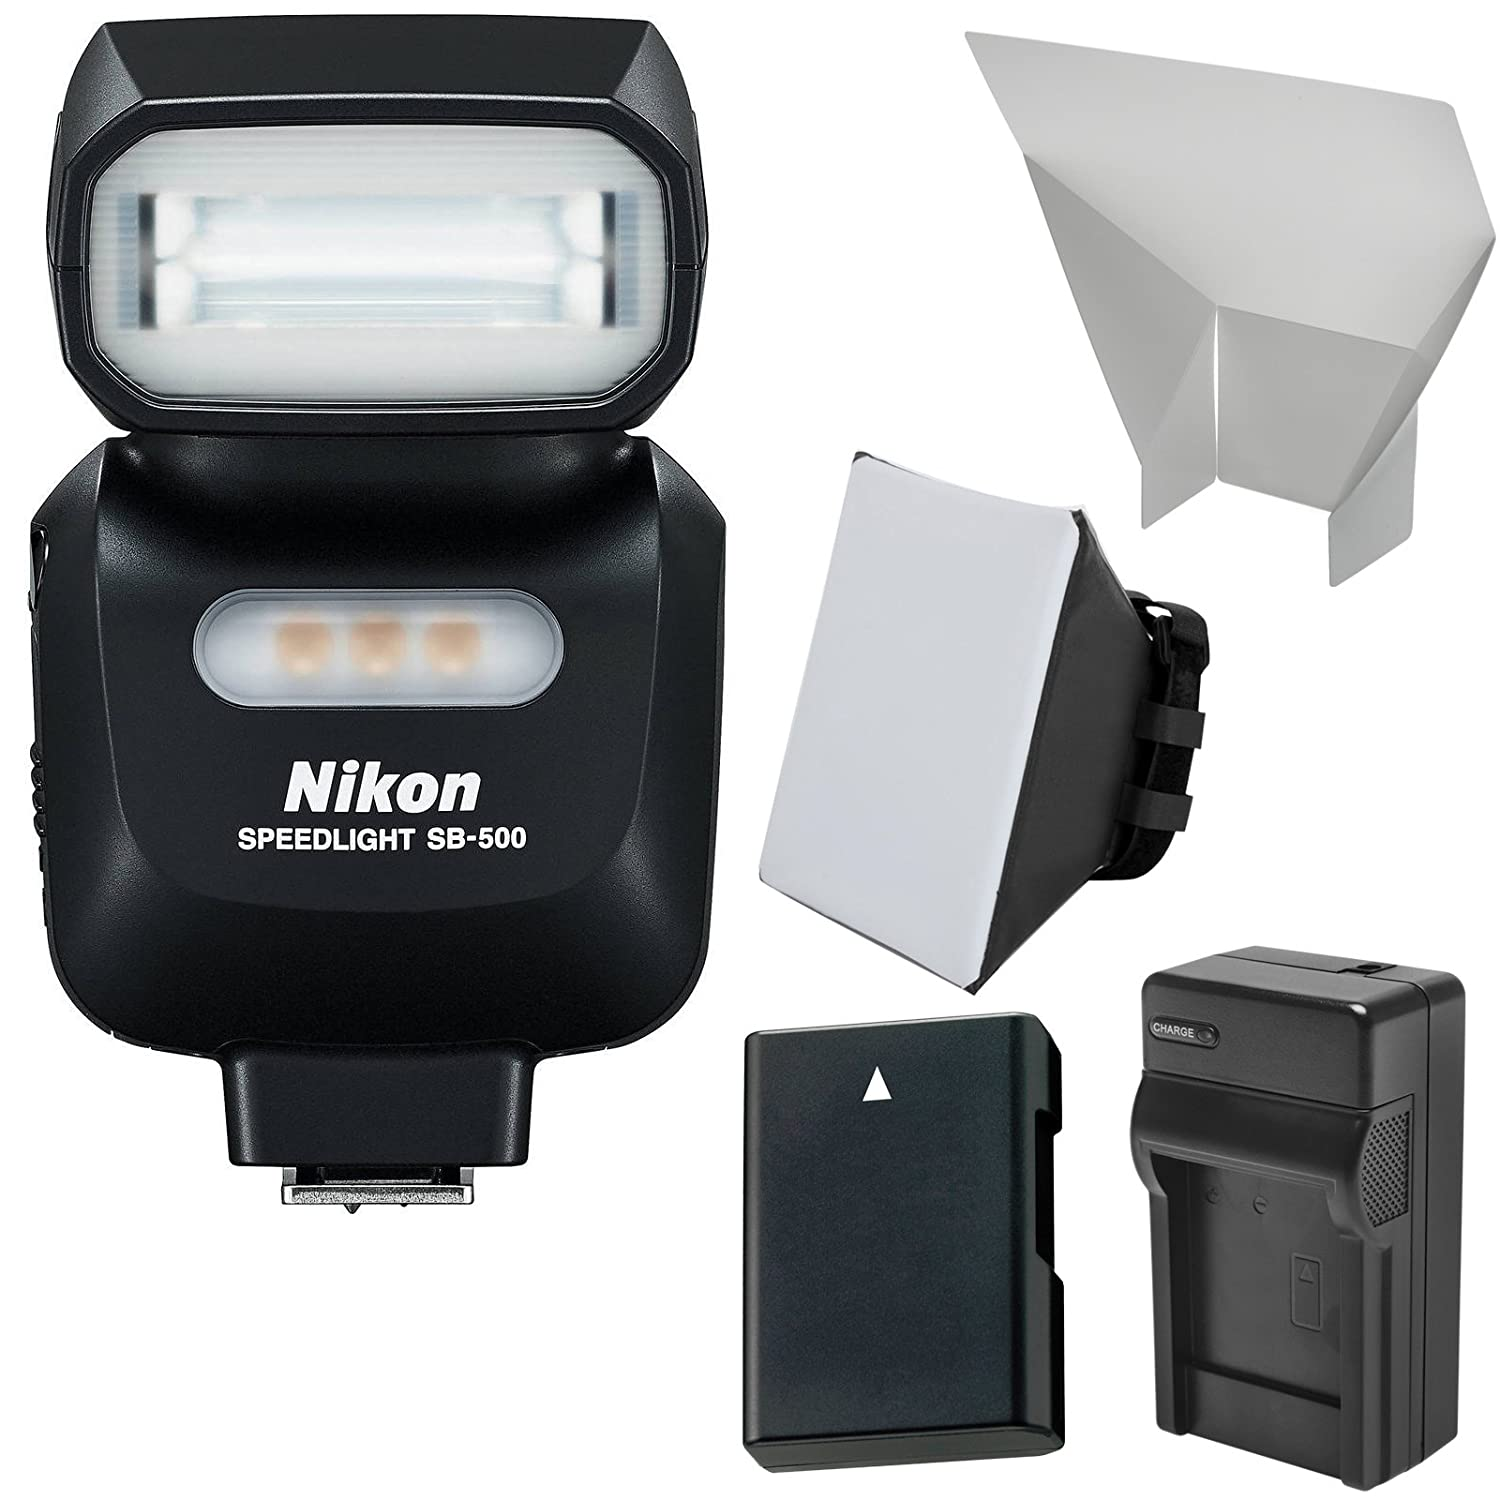 Nikon SB-500 AF Speedlight Flash & LED Video Light + EN-EL14 Battery & Charger + Softbox + Reflector Kit for D3200, D3300, D5100, D5200, D5300 Camera meike vertical battery pack grip for nikon d5300 d3300 2 en el14 dual charger